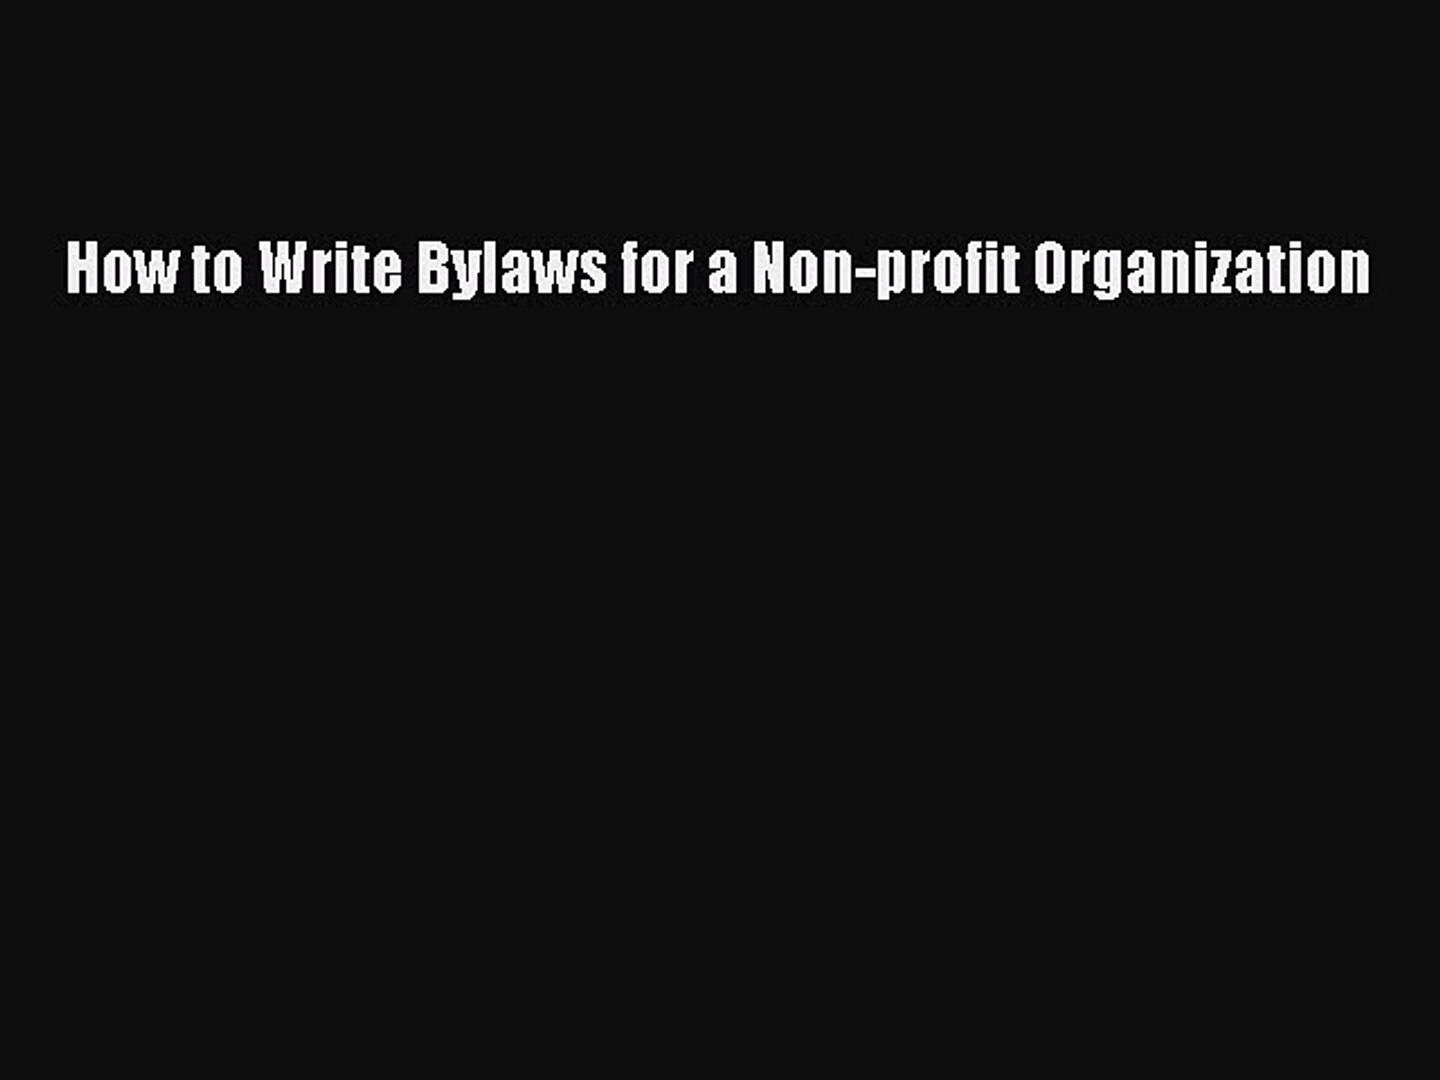 Download How to Write Bylaws for a Non-profit Organization  EBook